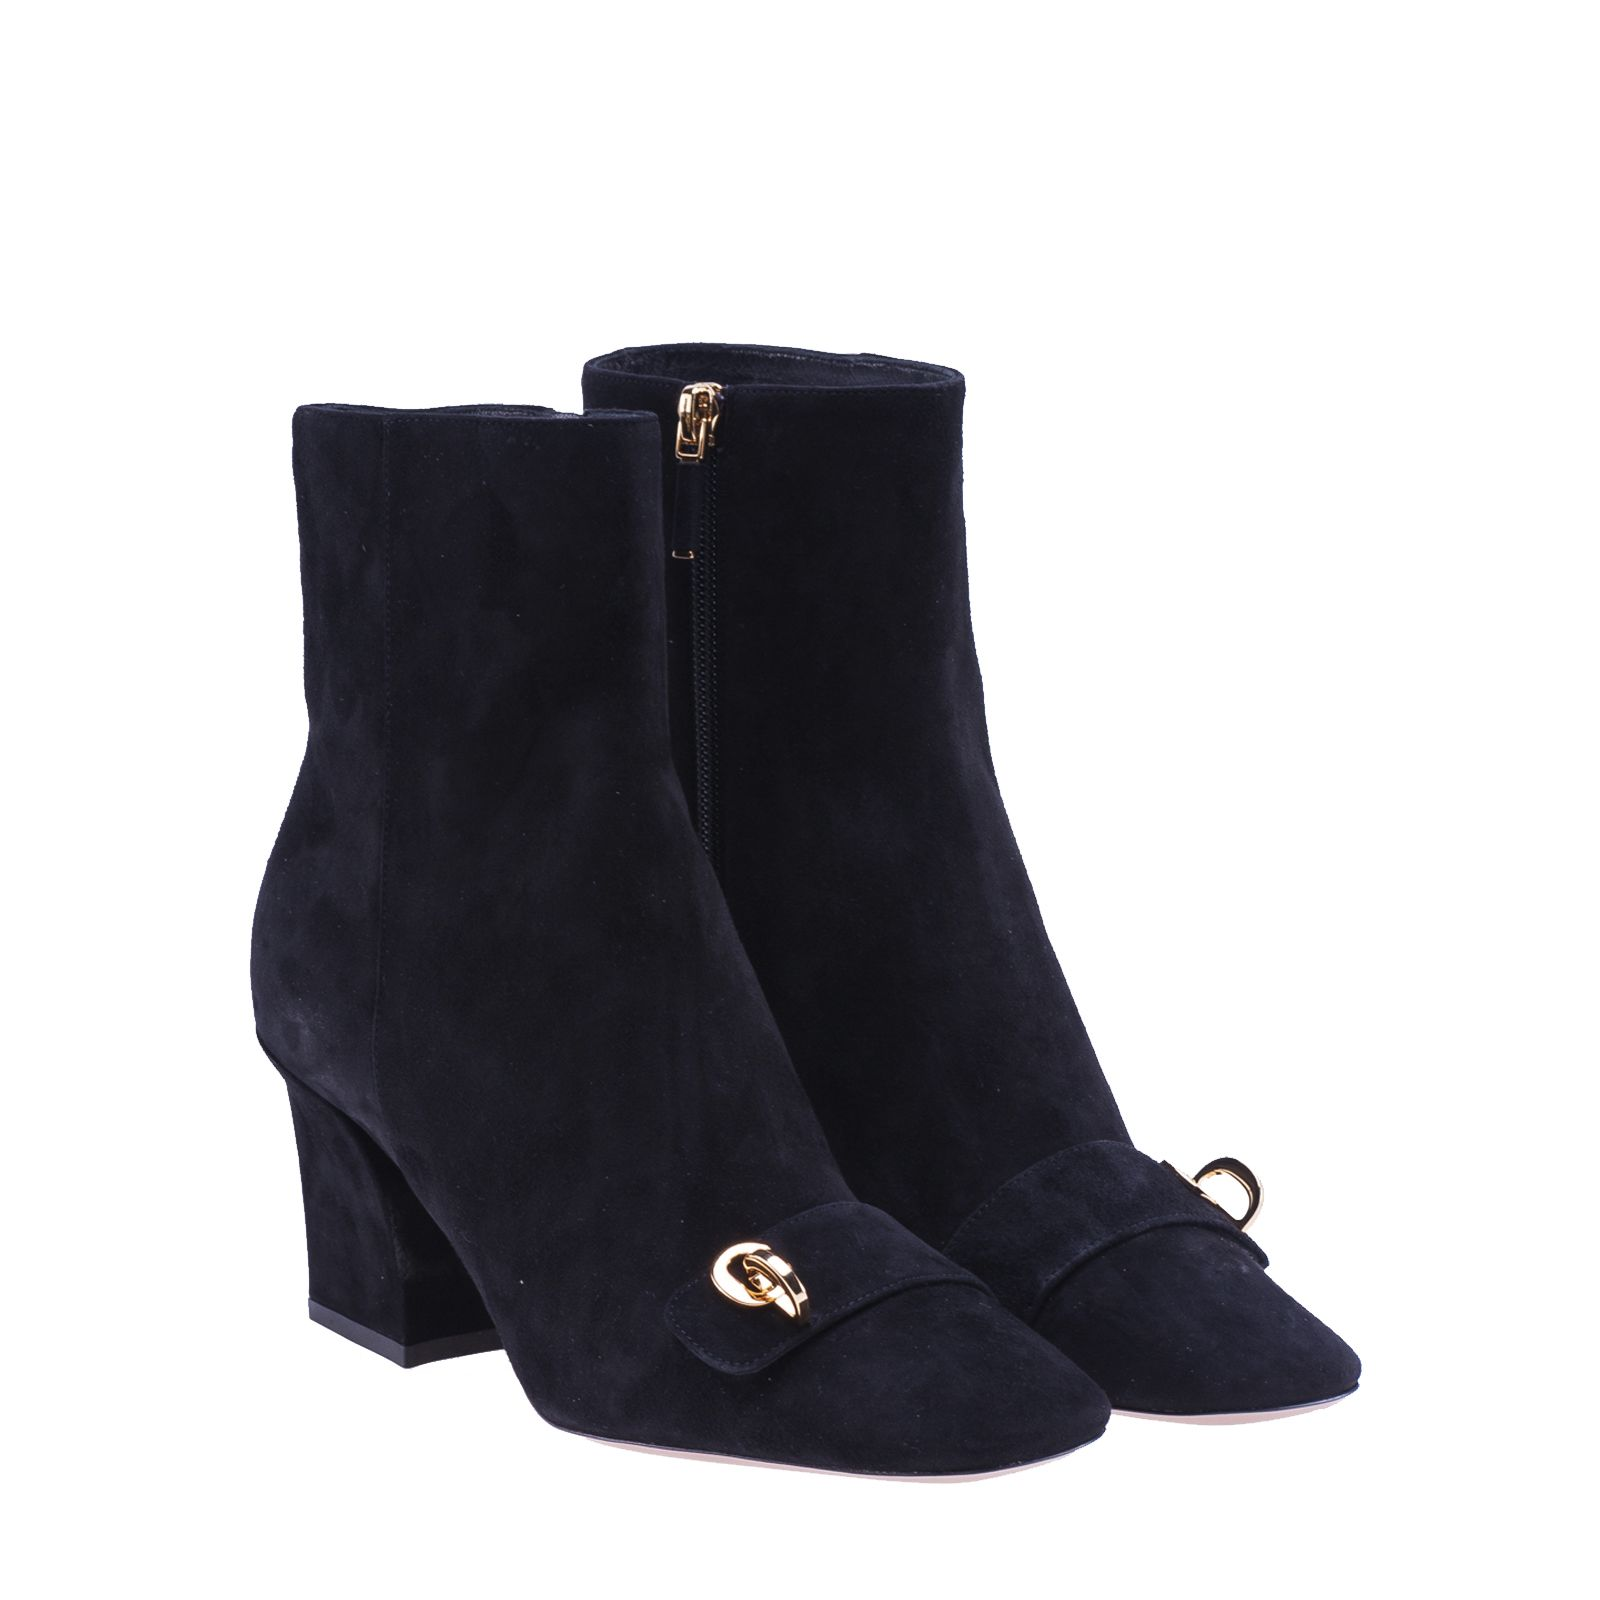 Bootie From Christian Dior